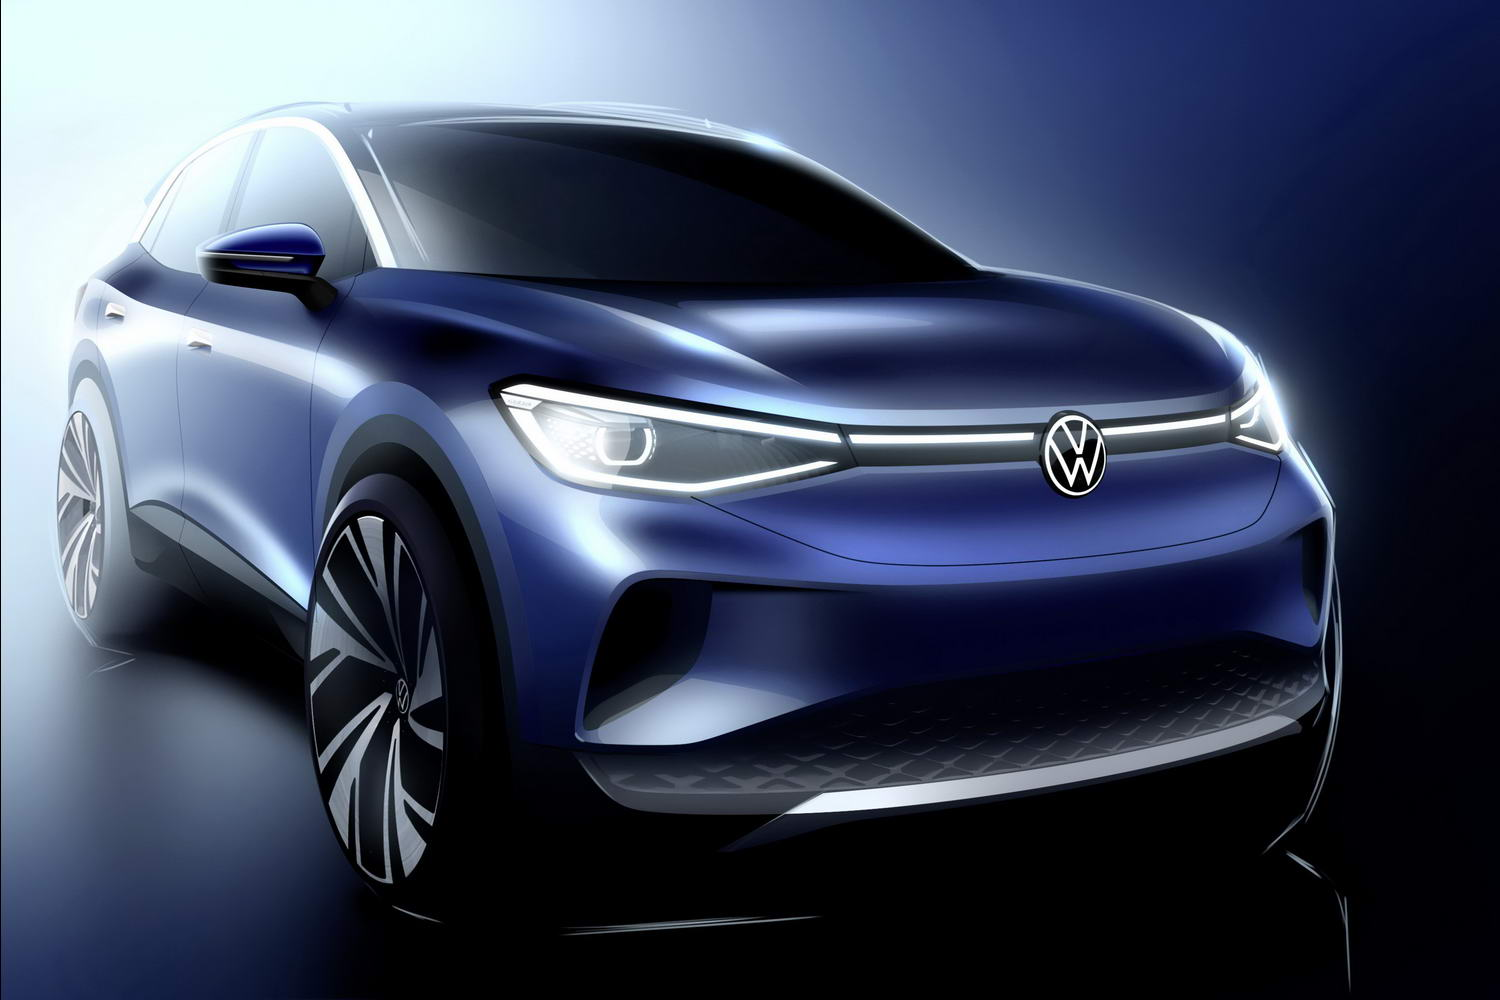 Car News | Volkswagen ID.4 previewed in sketch | CompleteCar.ie